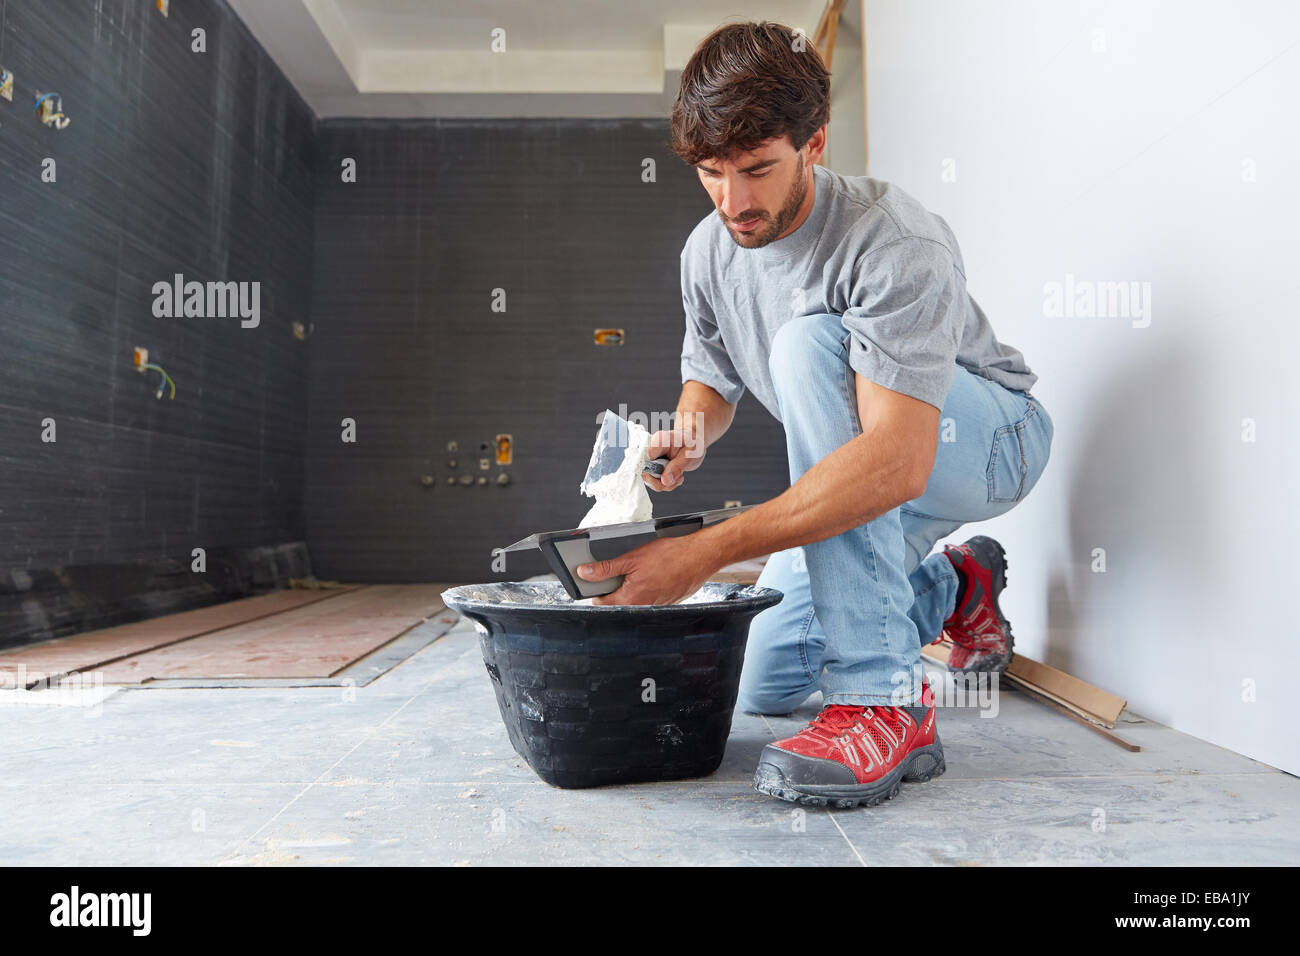 activity adhesive adult applying Basque Country beard bricklayer building built structure color image construction - Stock Image